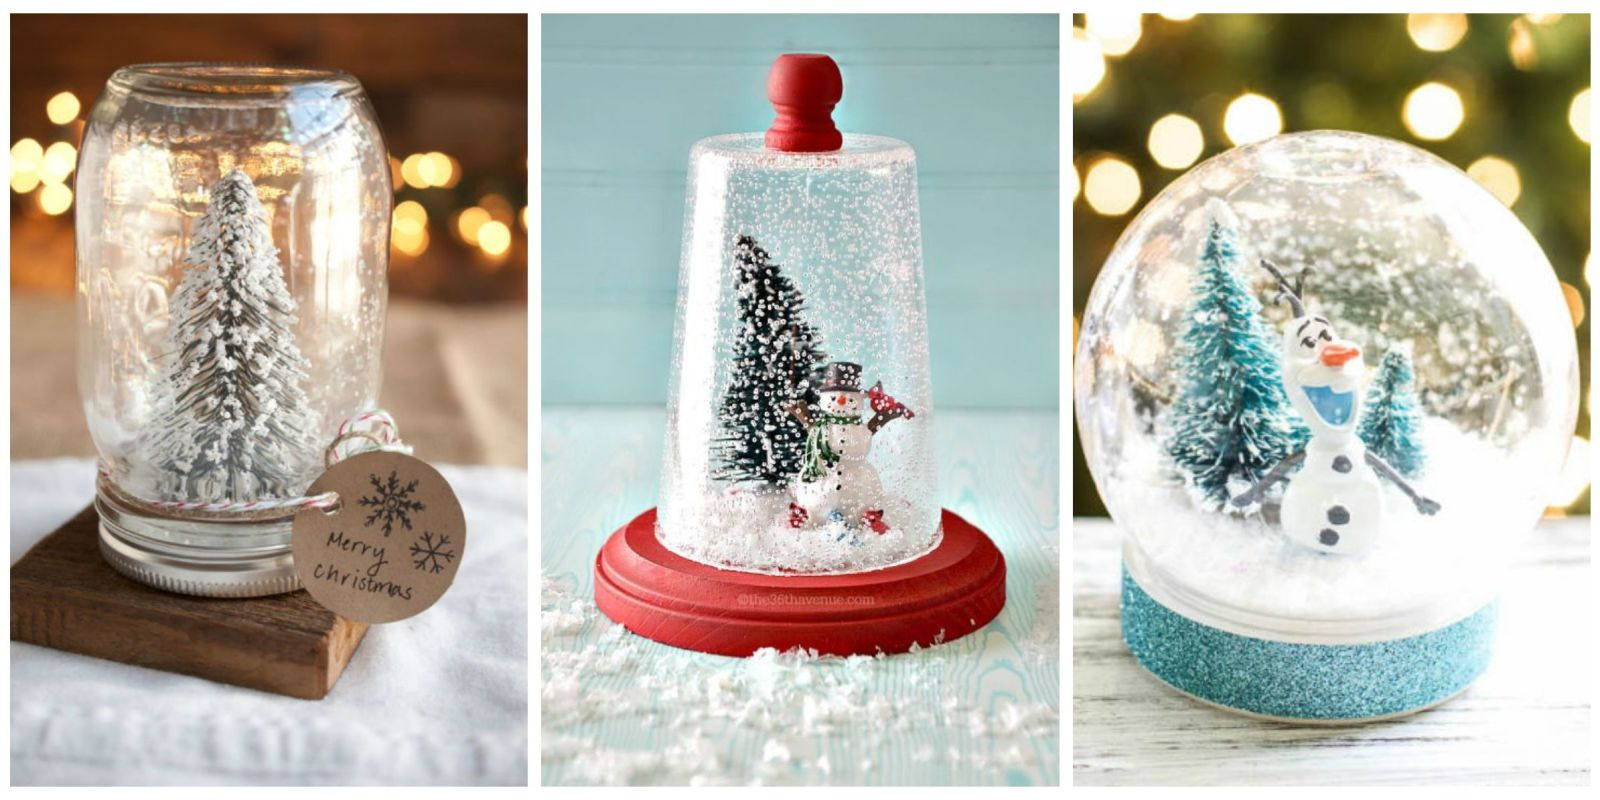 13 diy snowglobes that will get you excited for christmas how to make snow globes. Black Bedroom Furniture Sets. Home Design Ideas